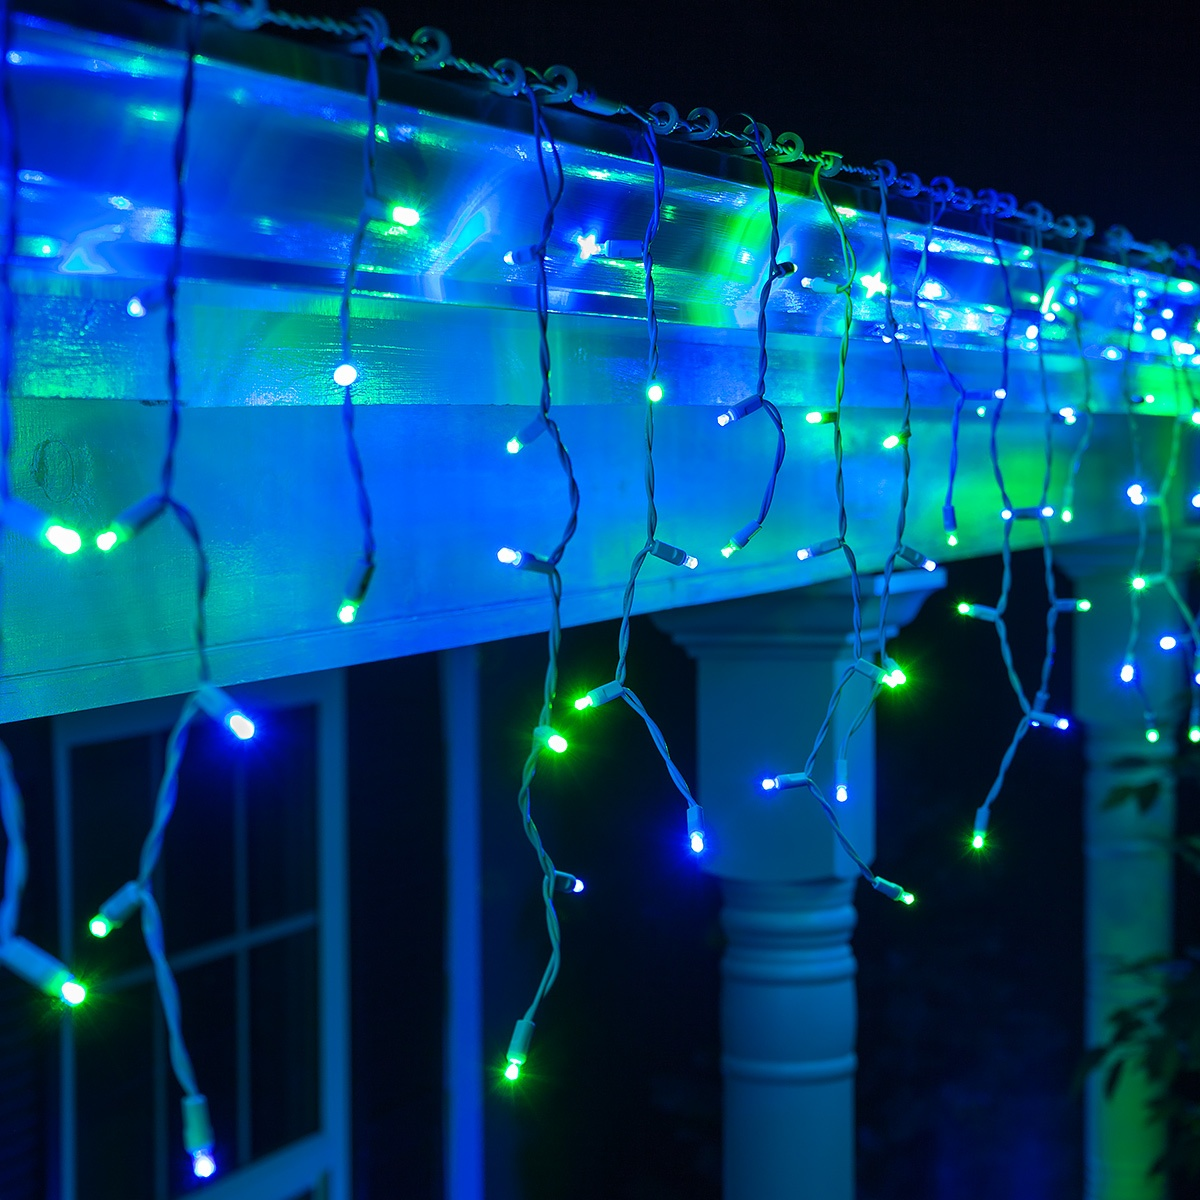 led christmas lights 70 5mm blue green led icicle lights - White Icicle Christmas Lights